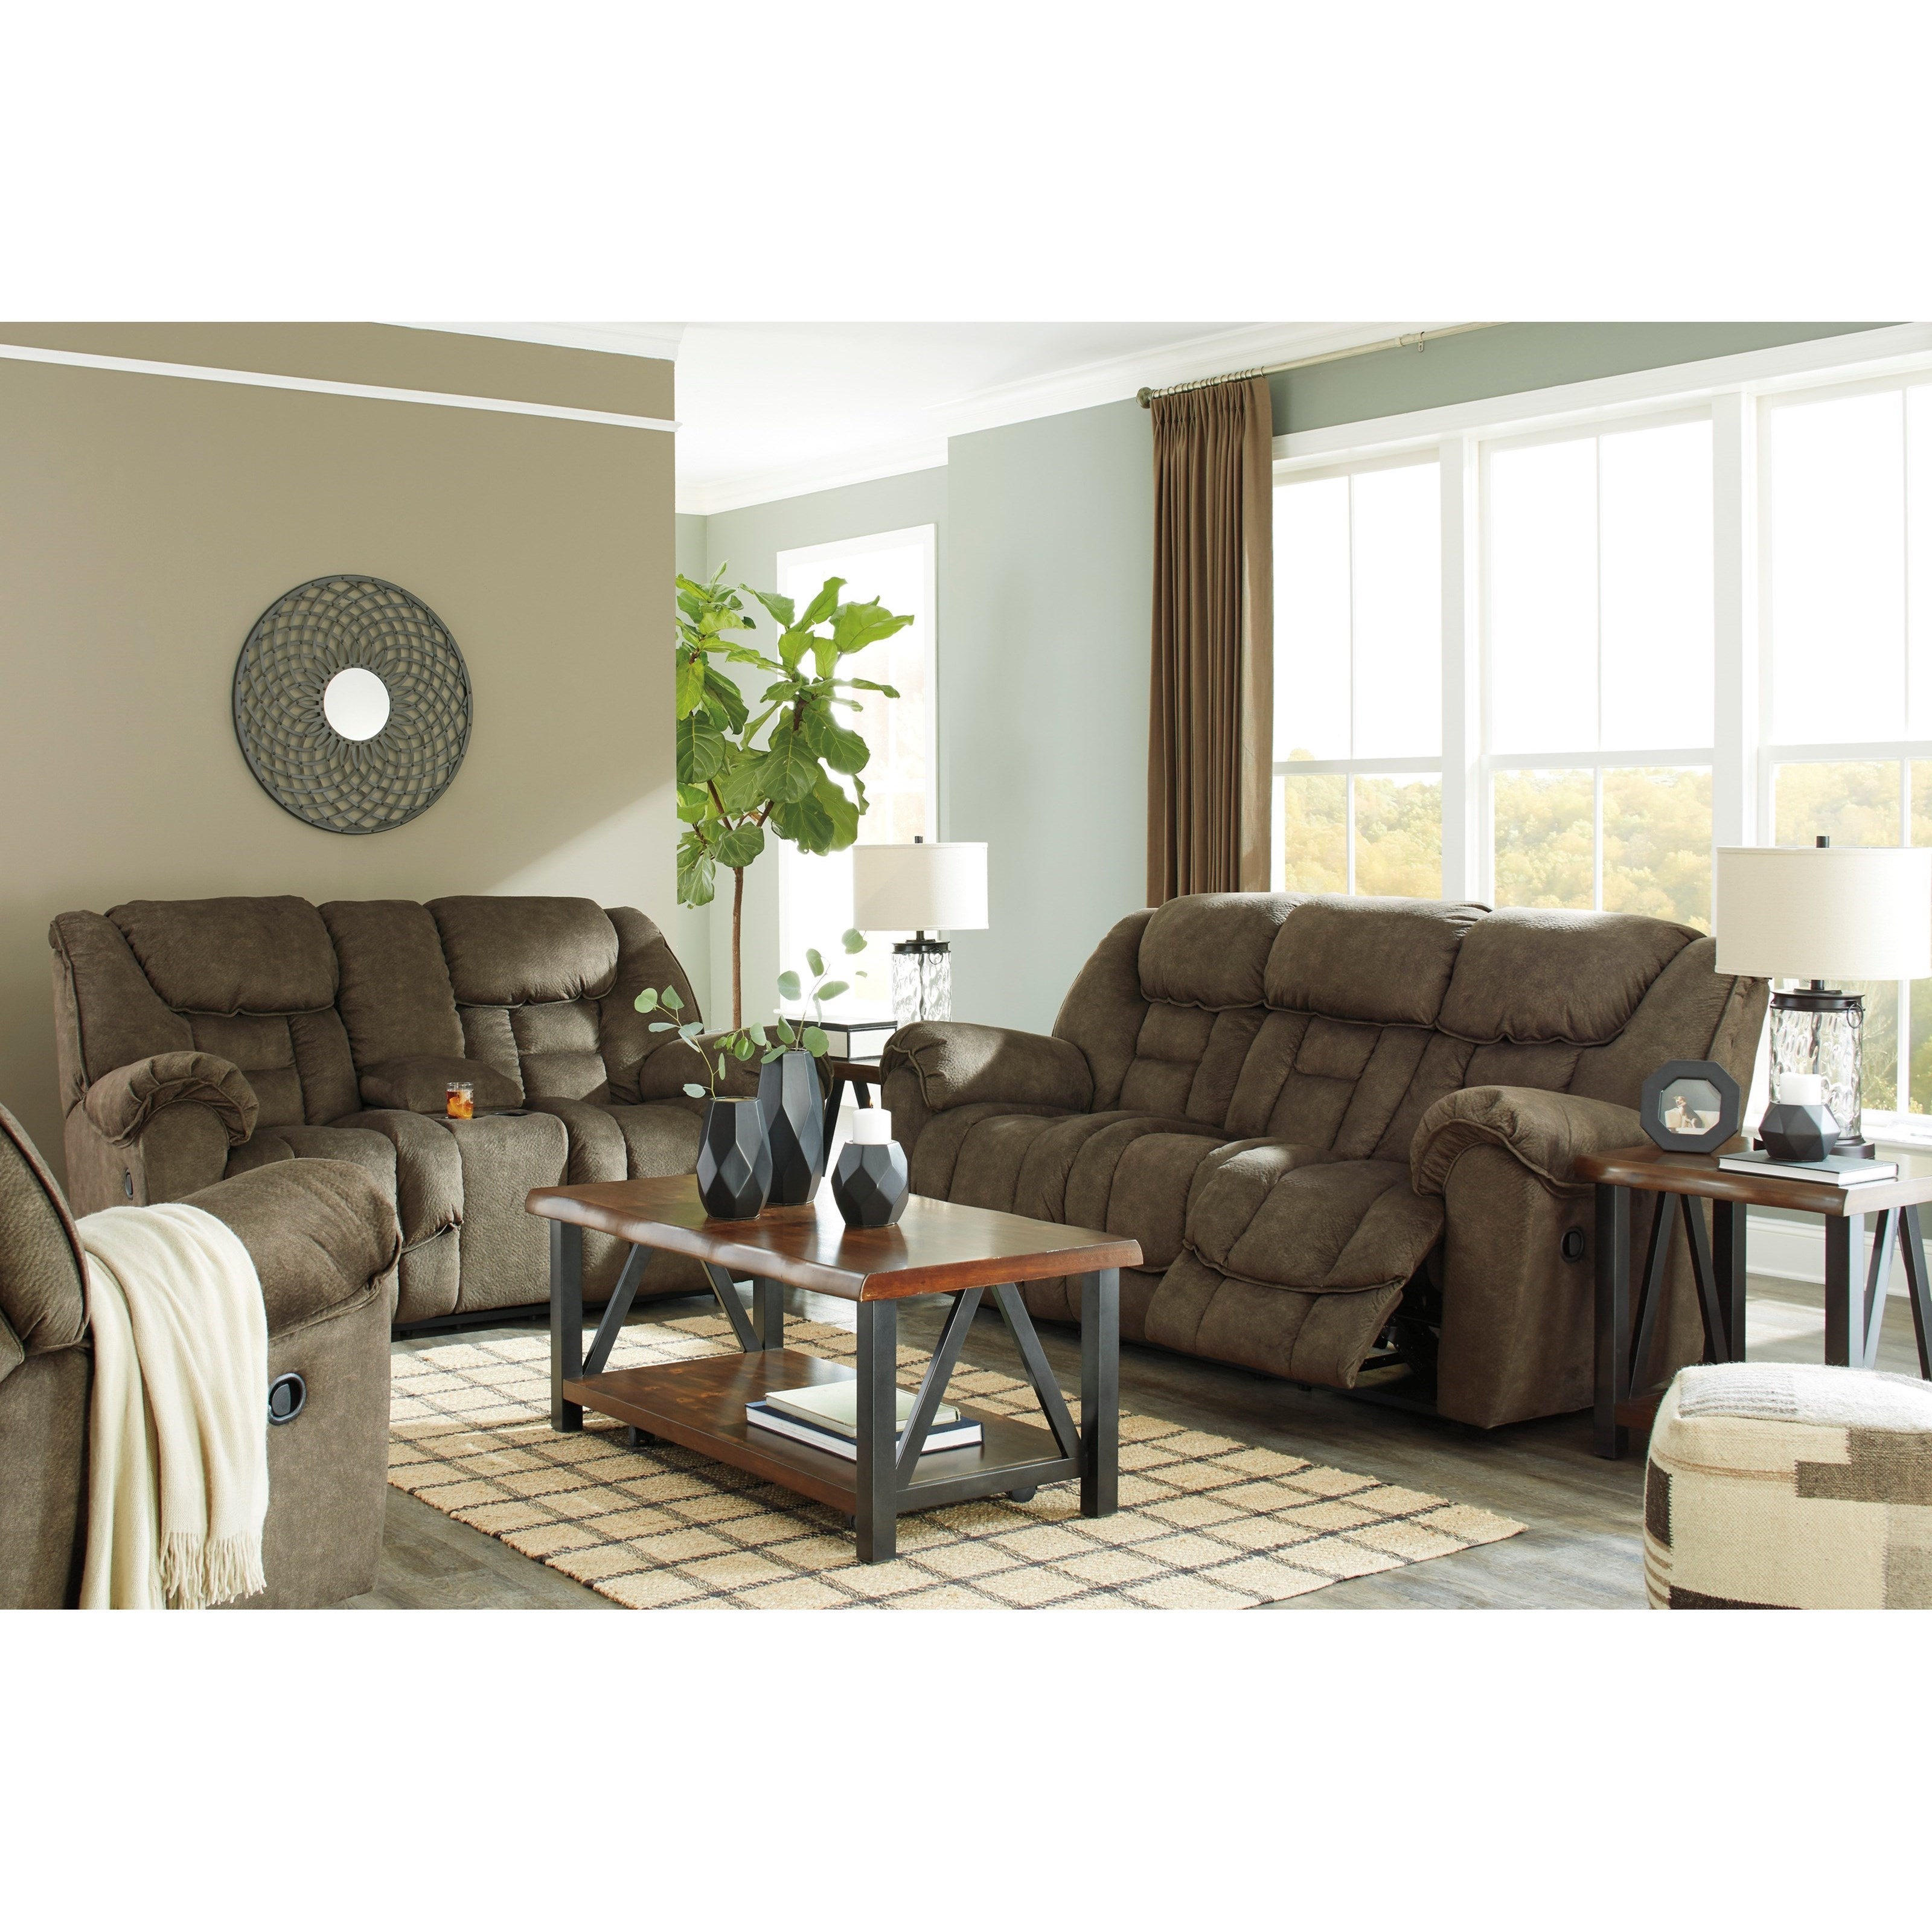 Signature design by ashley capehorn reclining living room for Living room furniture groups